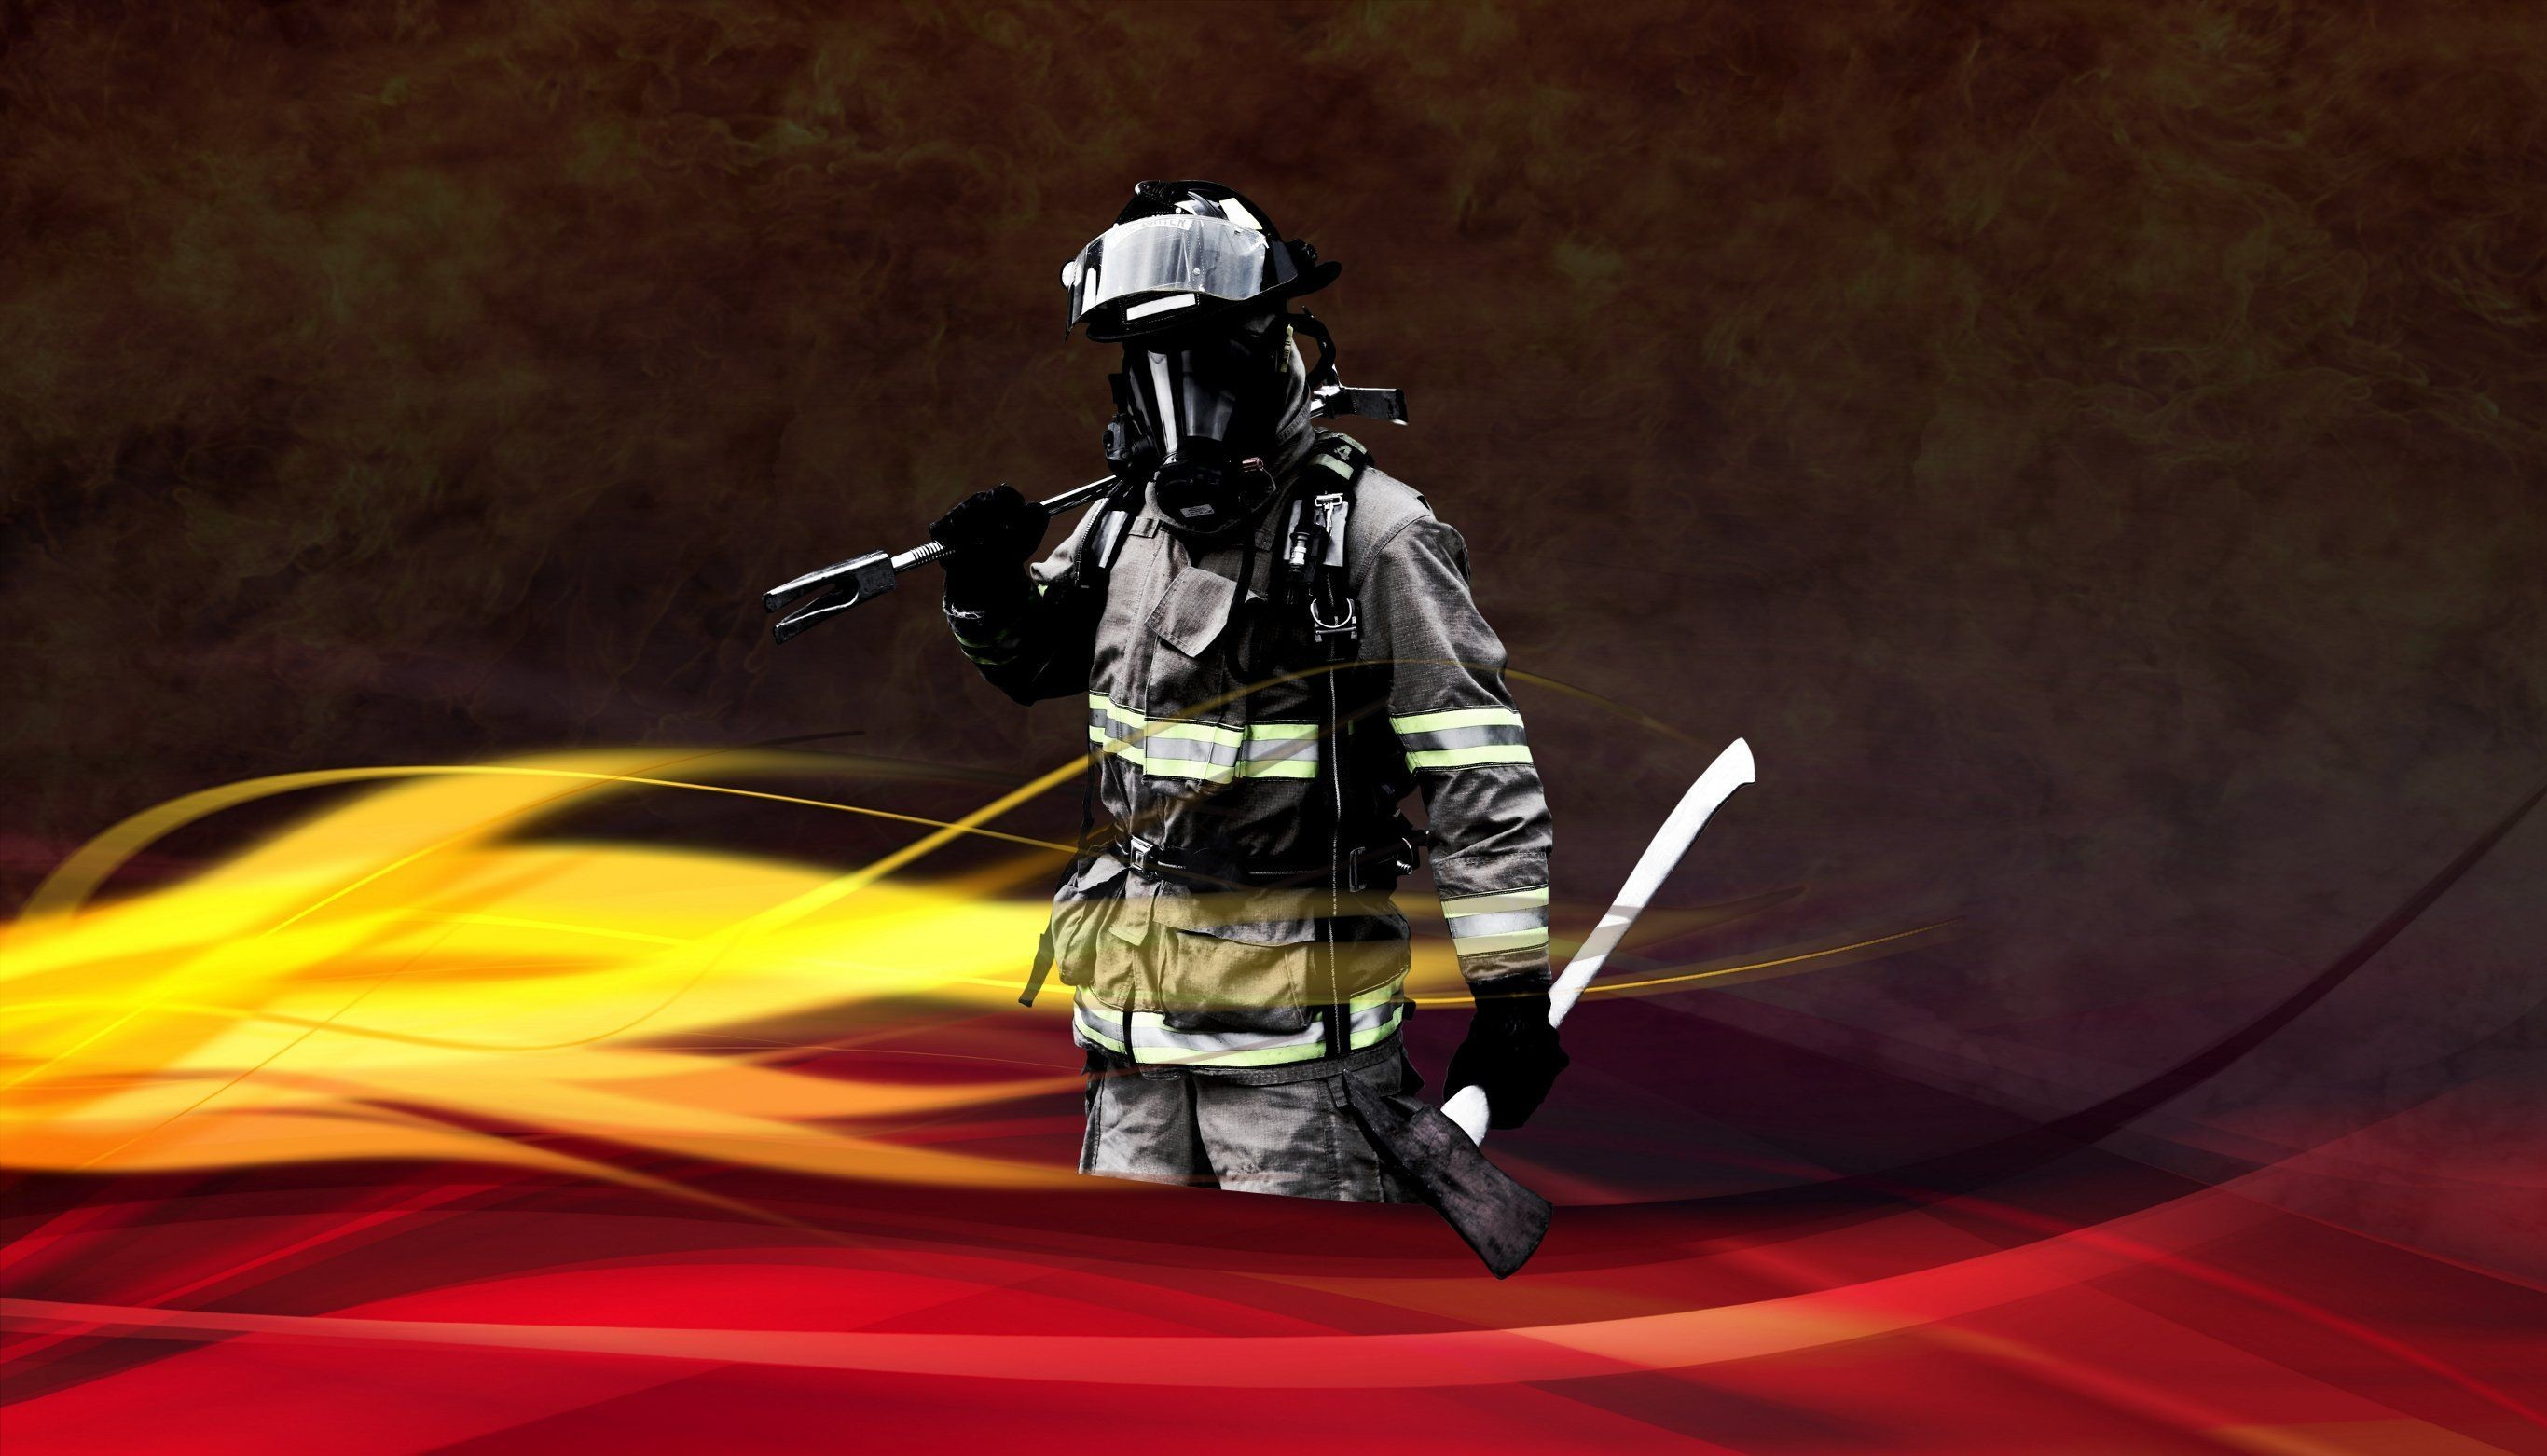 Res: 2732x1562, Firefighter Wallpaper Background · Navy Seal Wallpapers | Best .